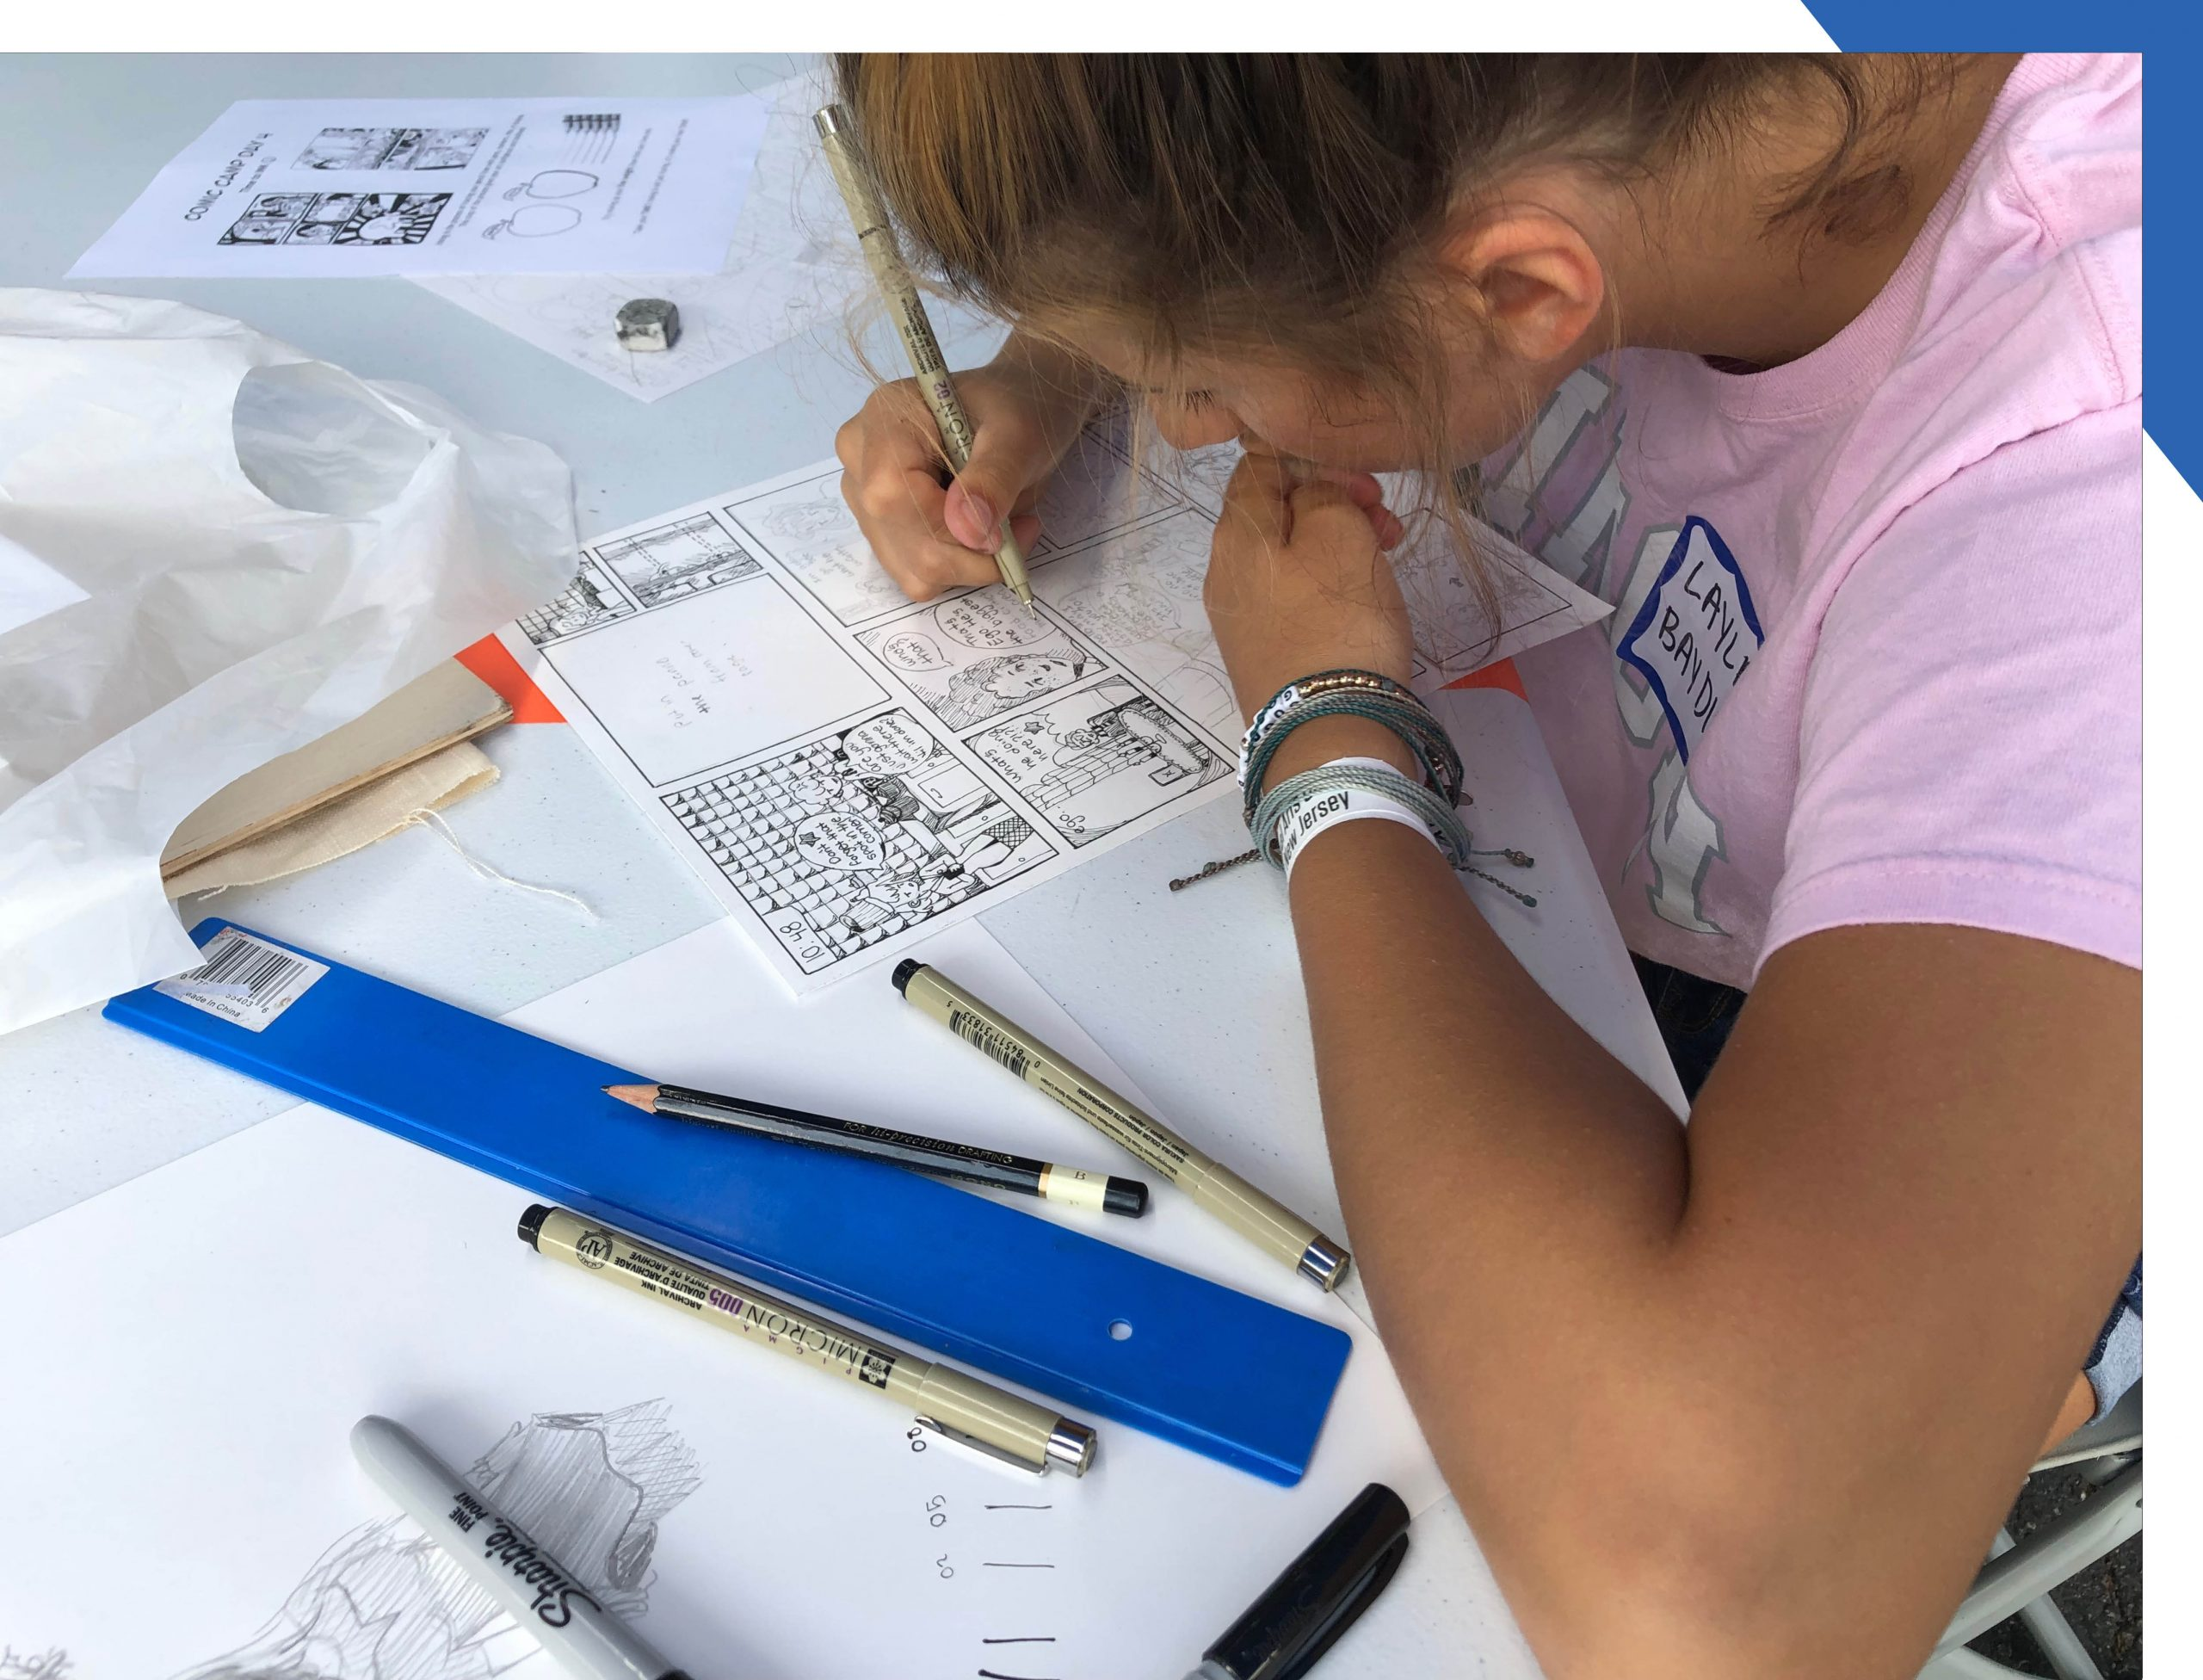 Child camper drawing a sequential art project.